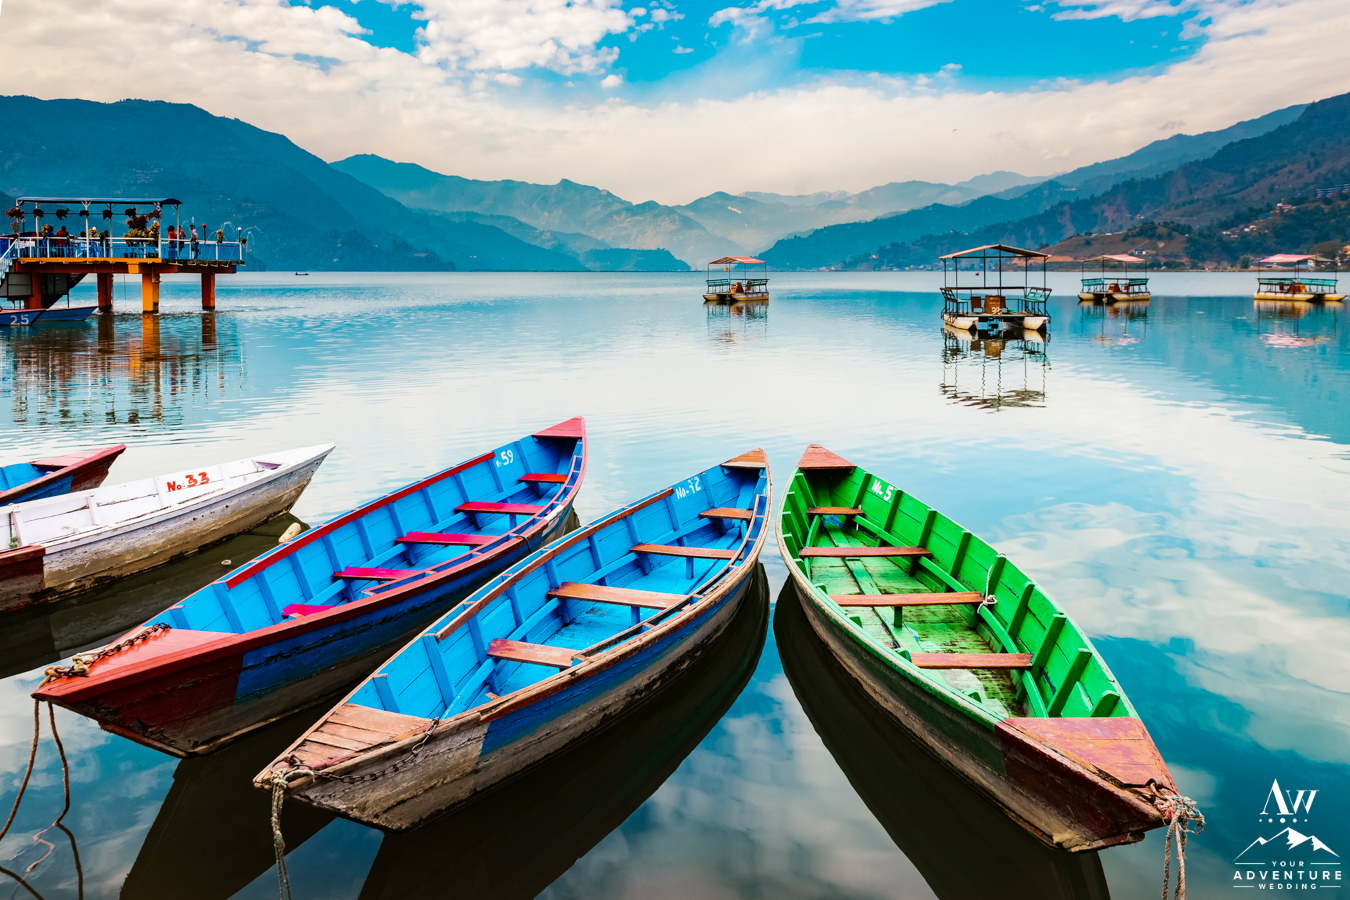 Nepal Elopement Location Boats on a Lake